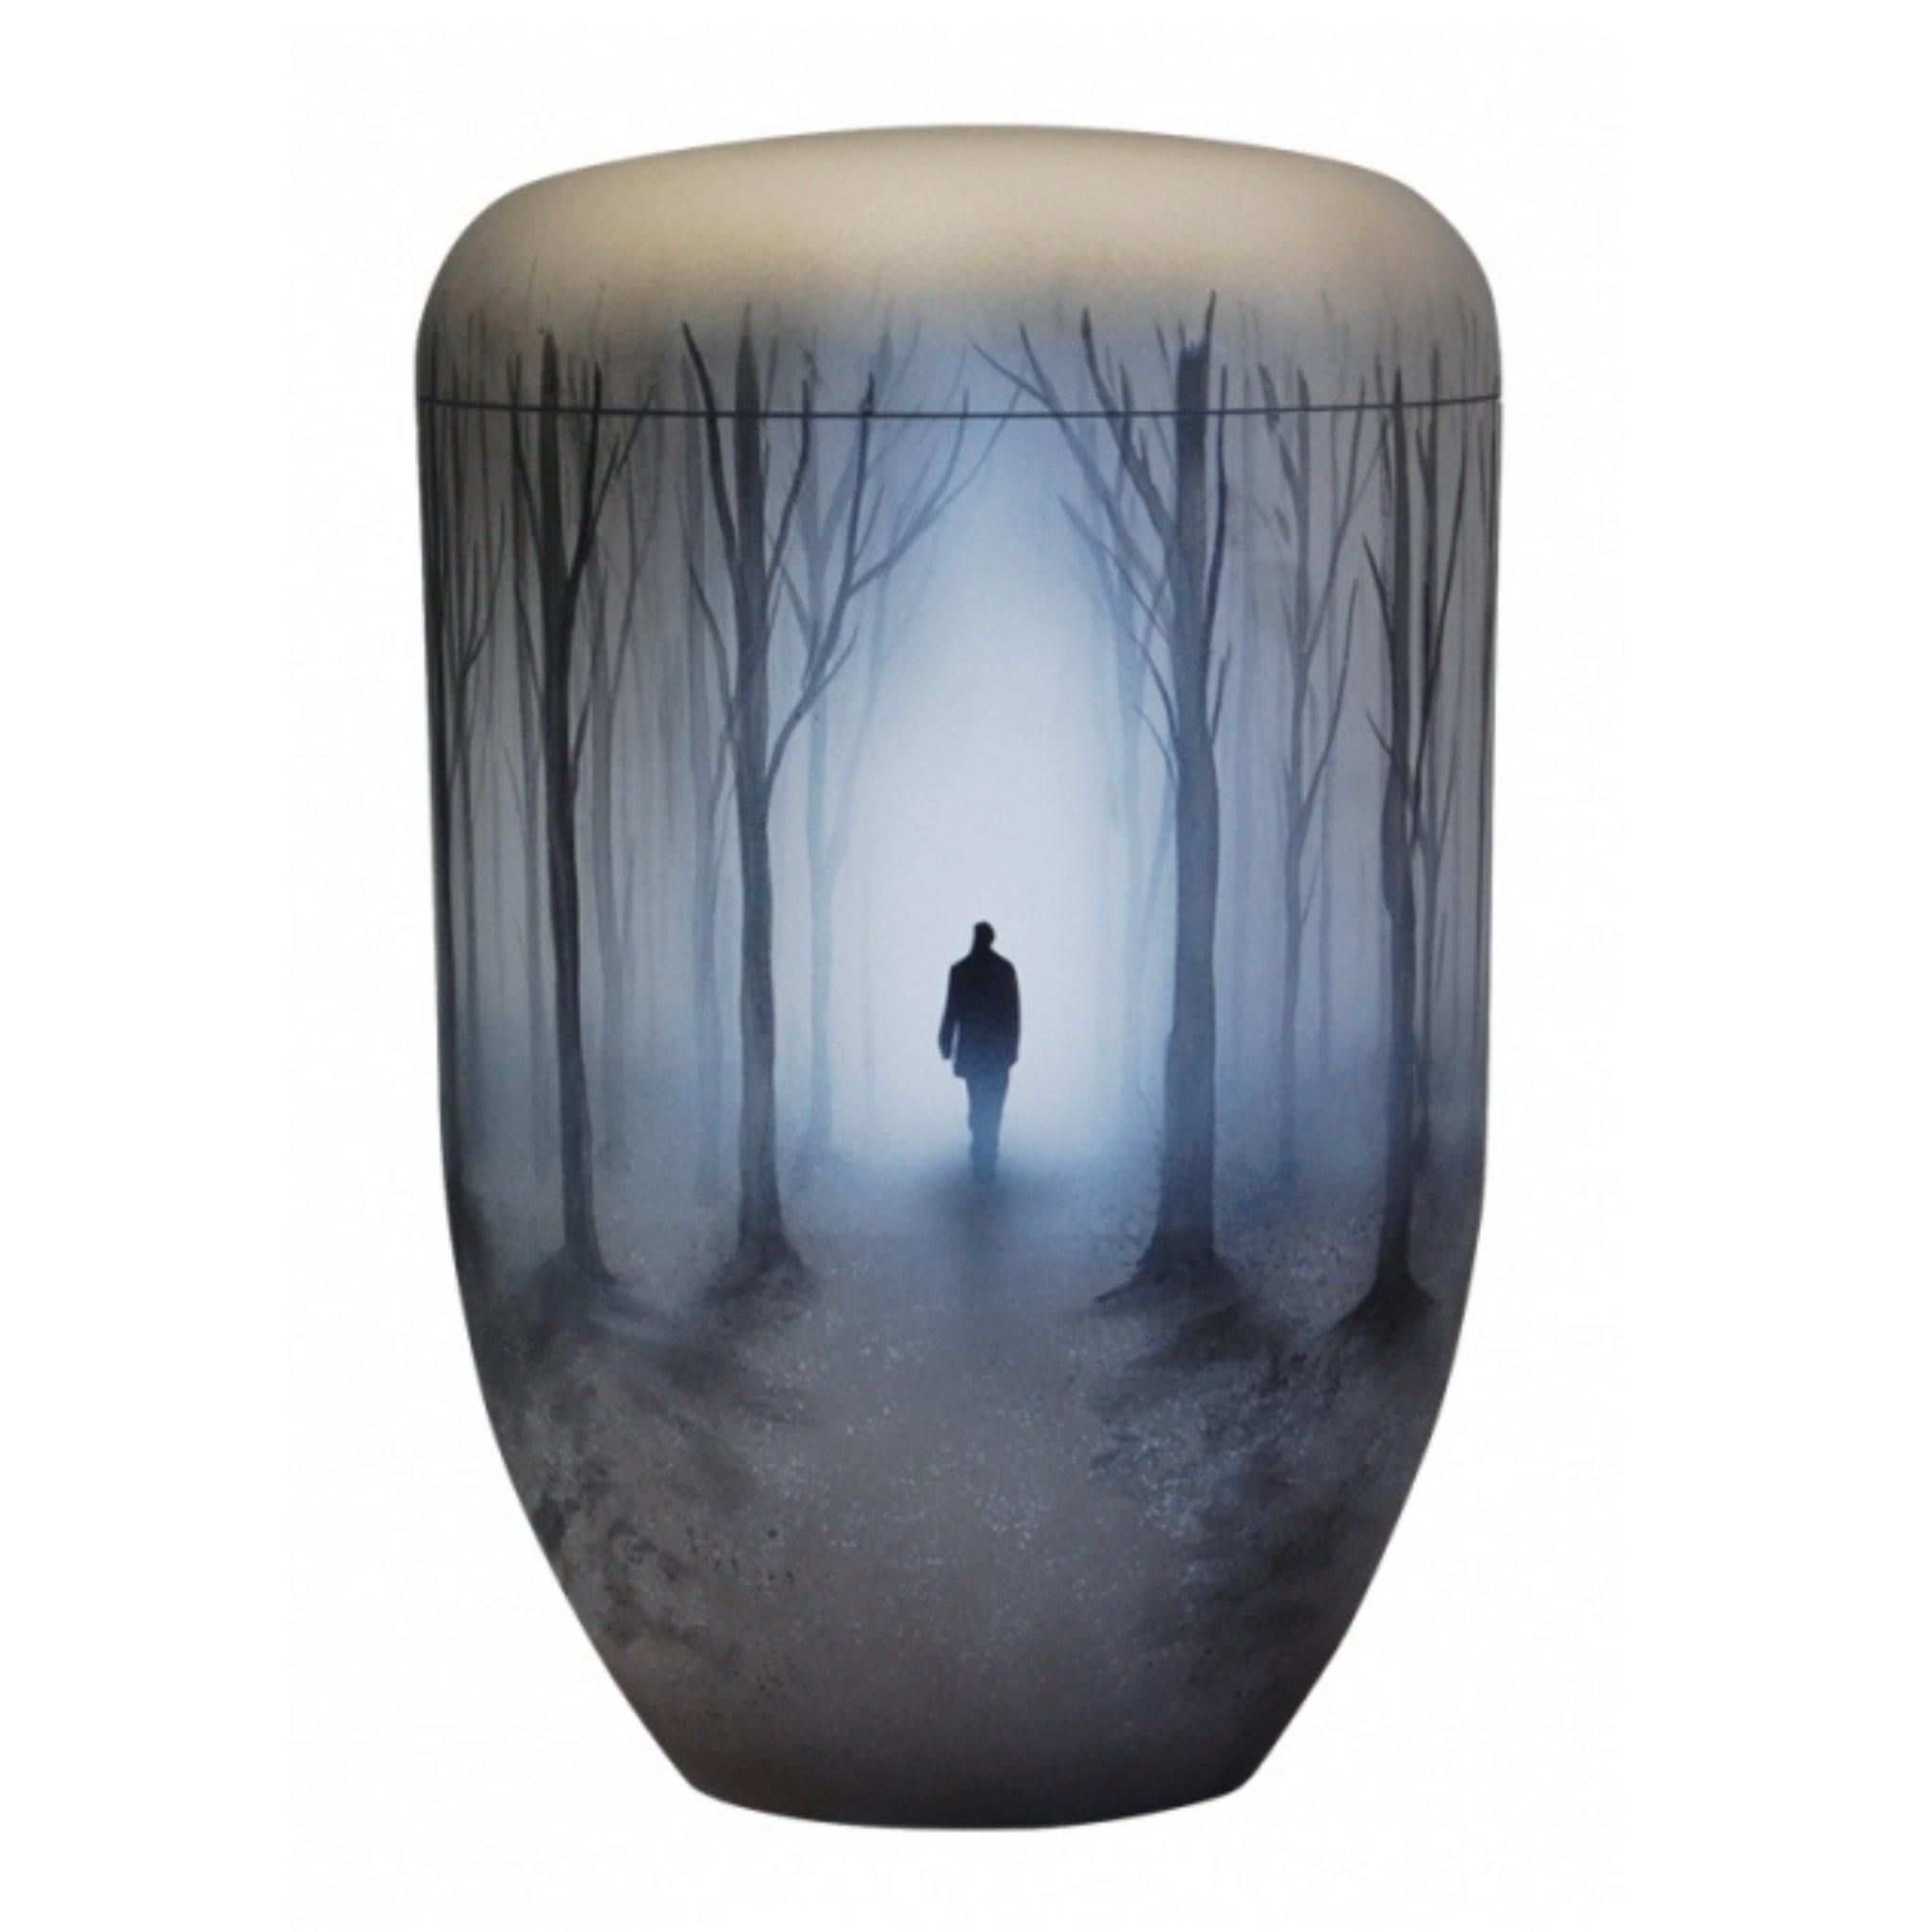 Polperro Man in the Mist Bio Cremation Ashes Urn - Urns UK